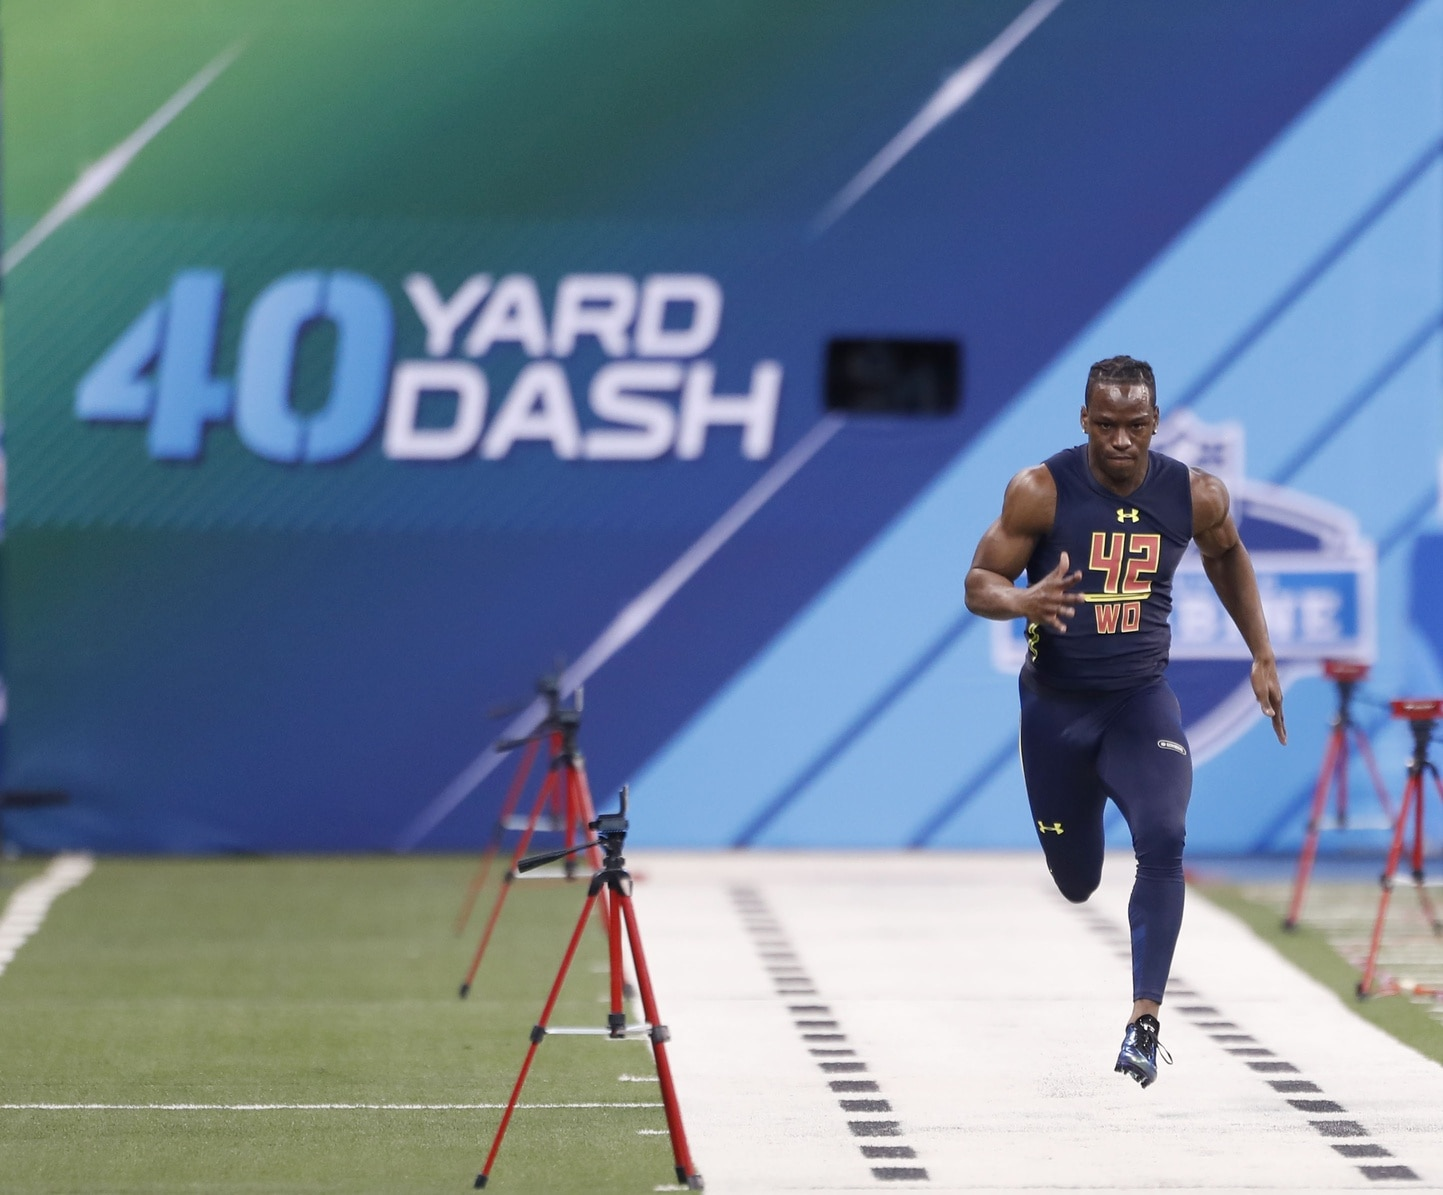 John Ross was a star at the 2017 NFL Scouting Combine